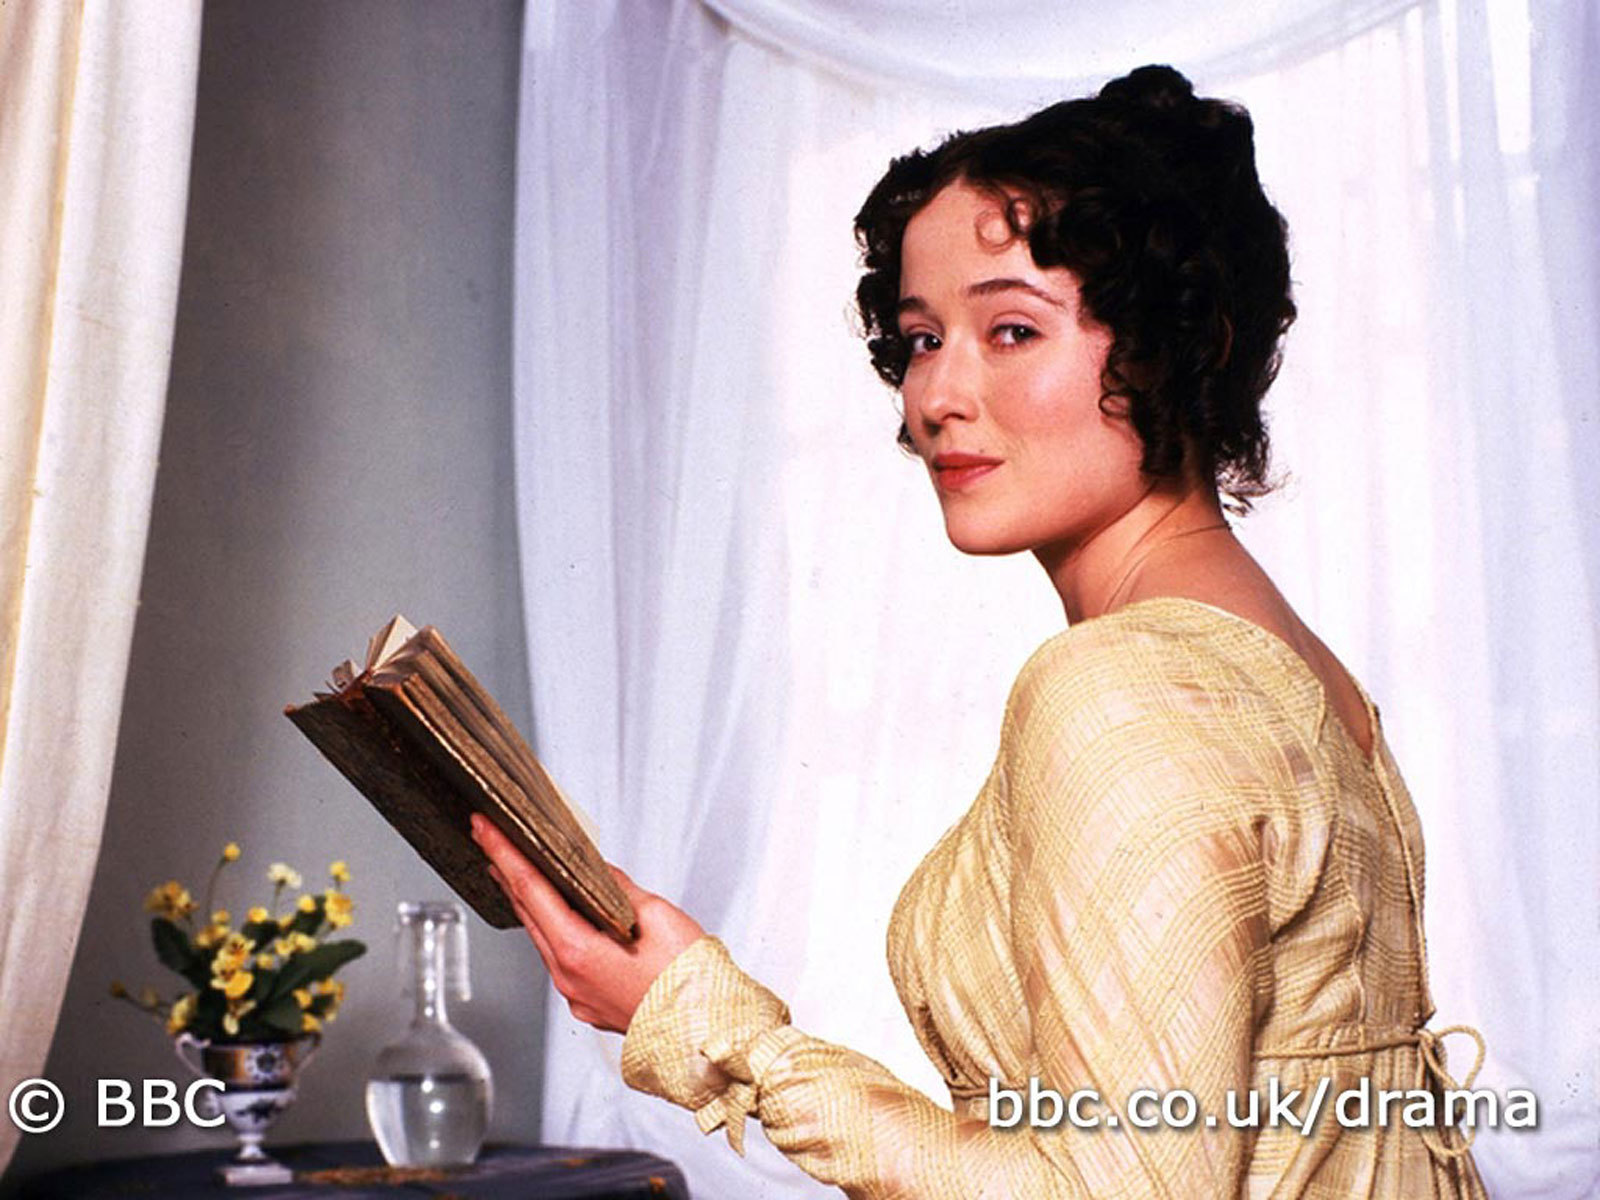 Jane Austen fans tend to read her books repeatedly throughout their lives. In an article in the Guardian UK, Charlotte Higgins describes how her identity ...